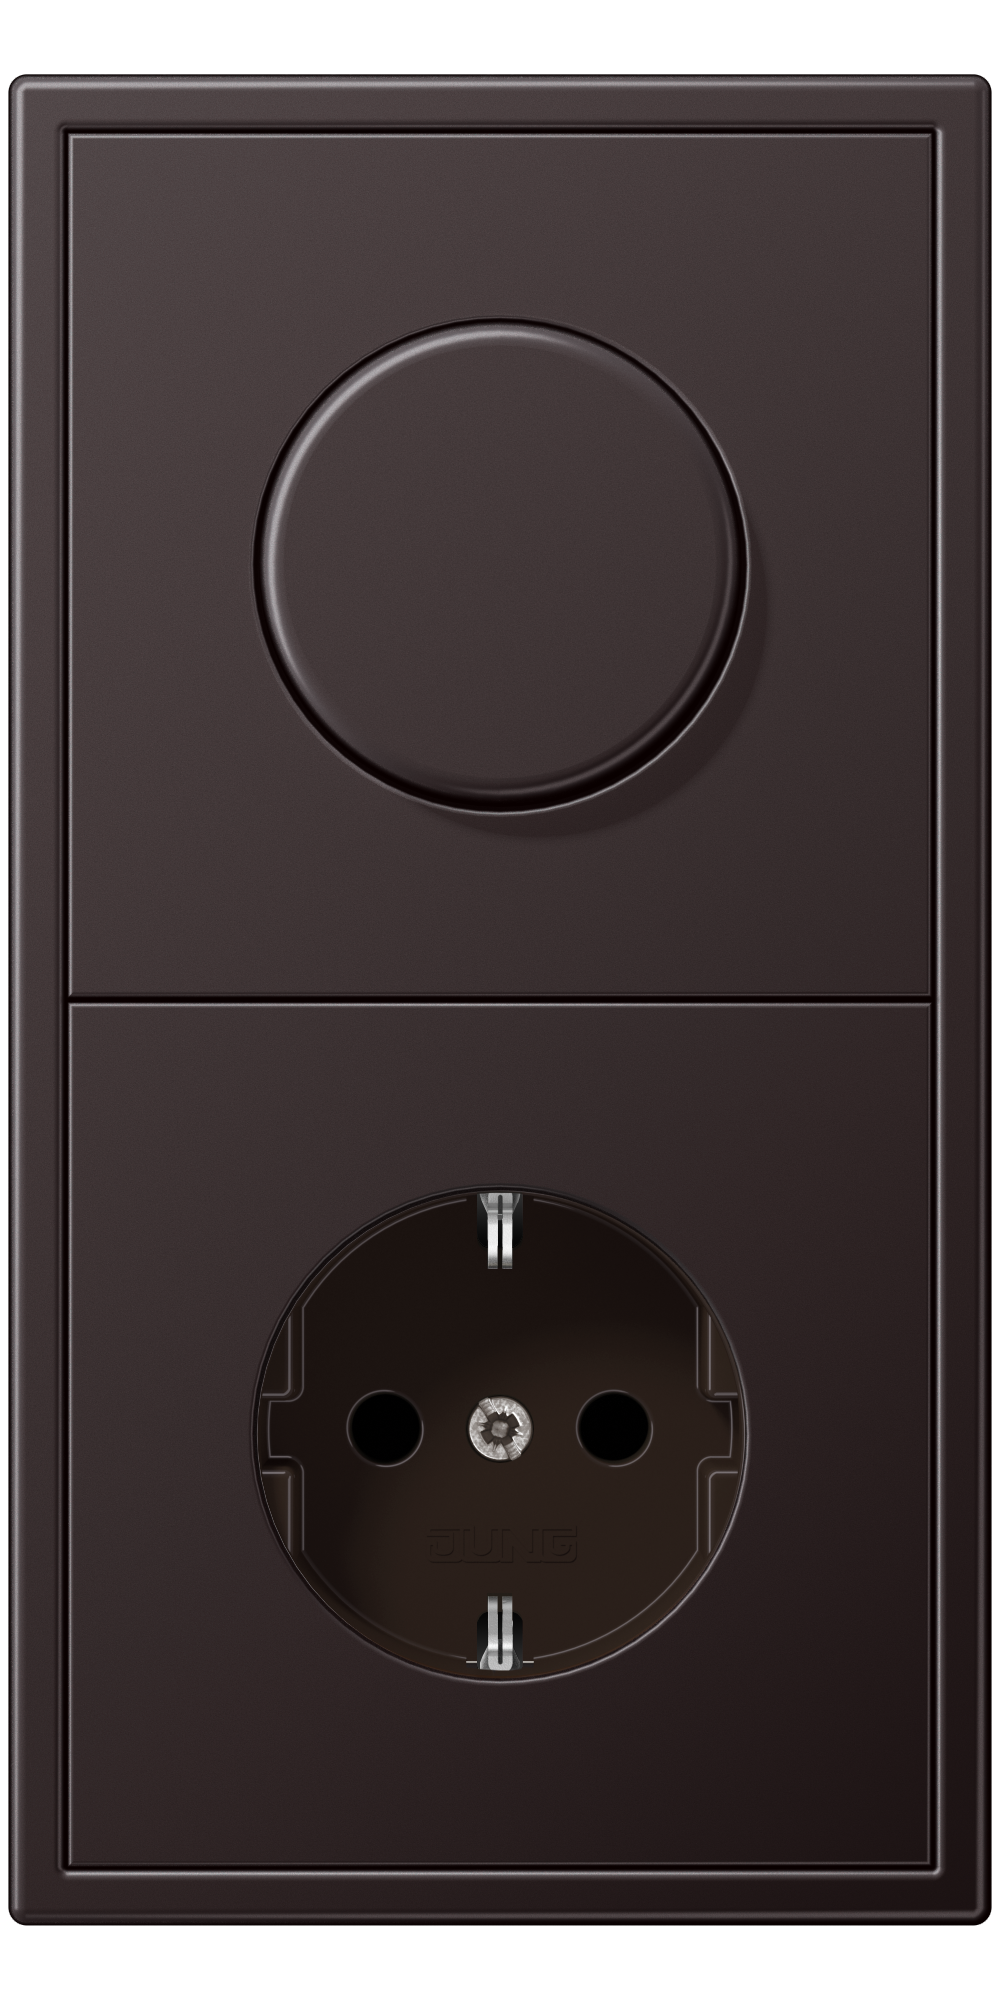 JUNG_LS990_aluminium-dark_dimmer-socket